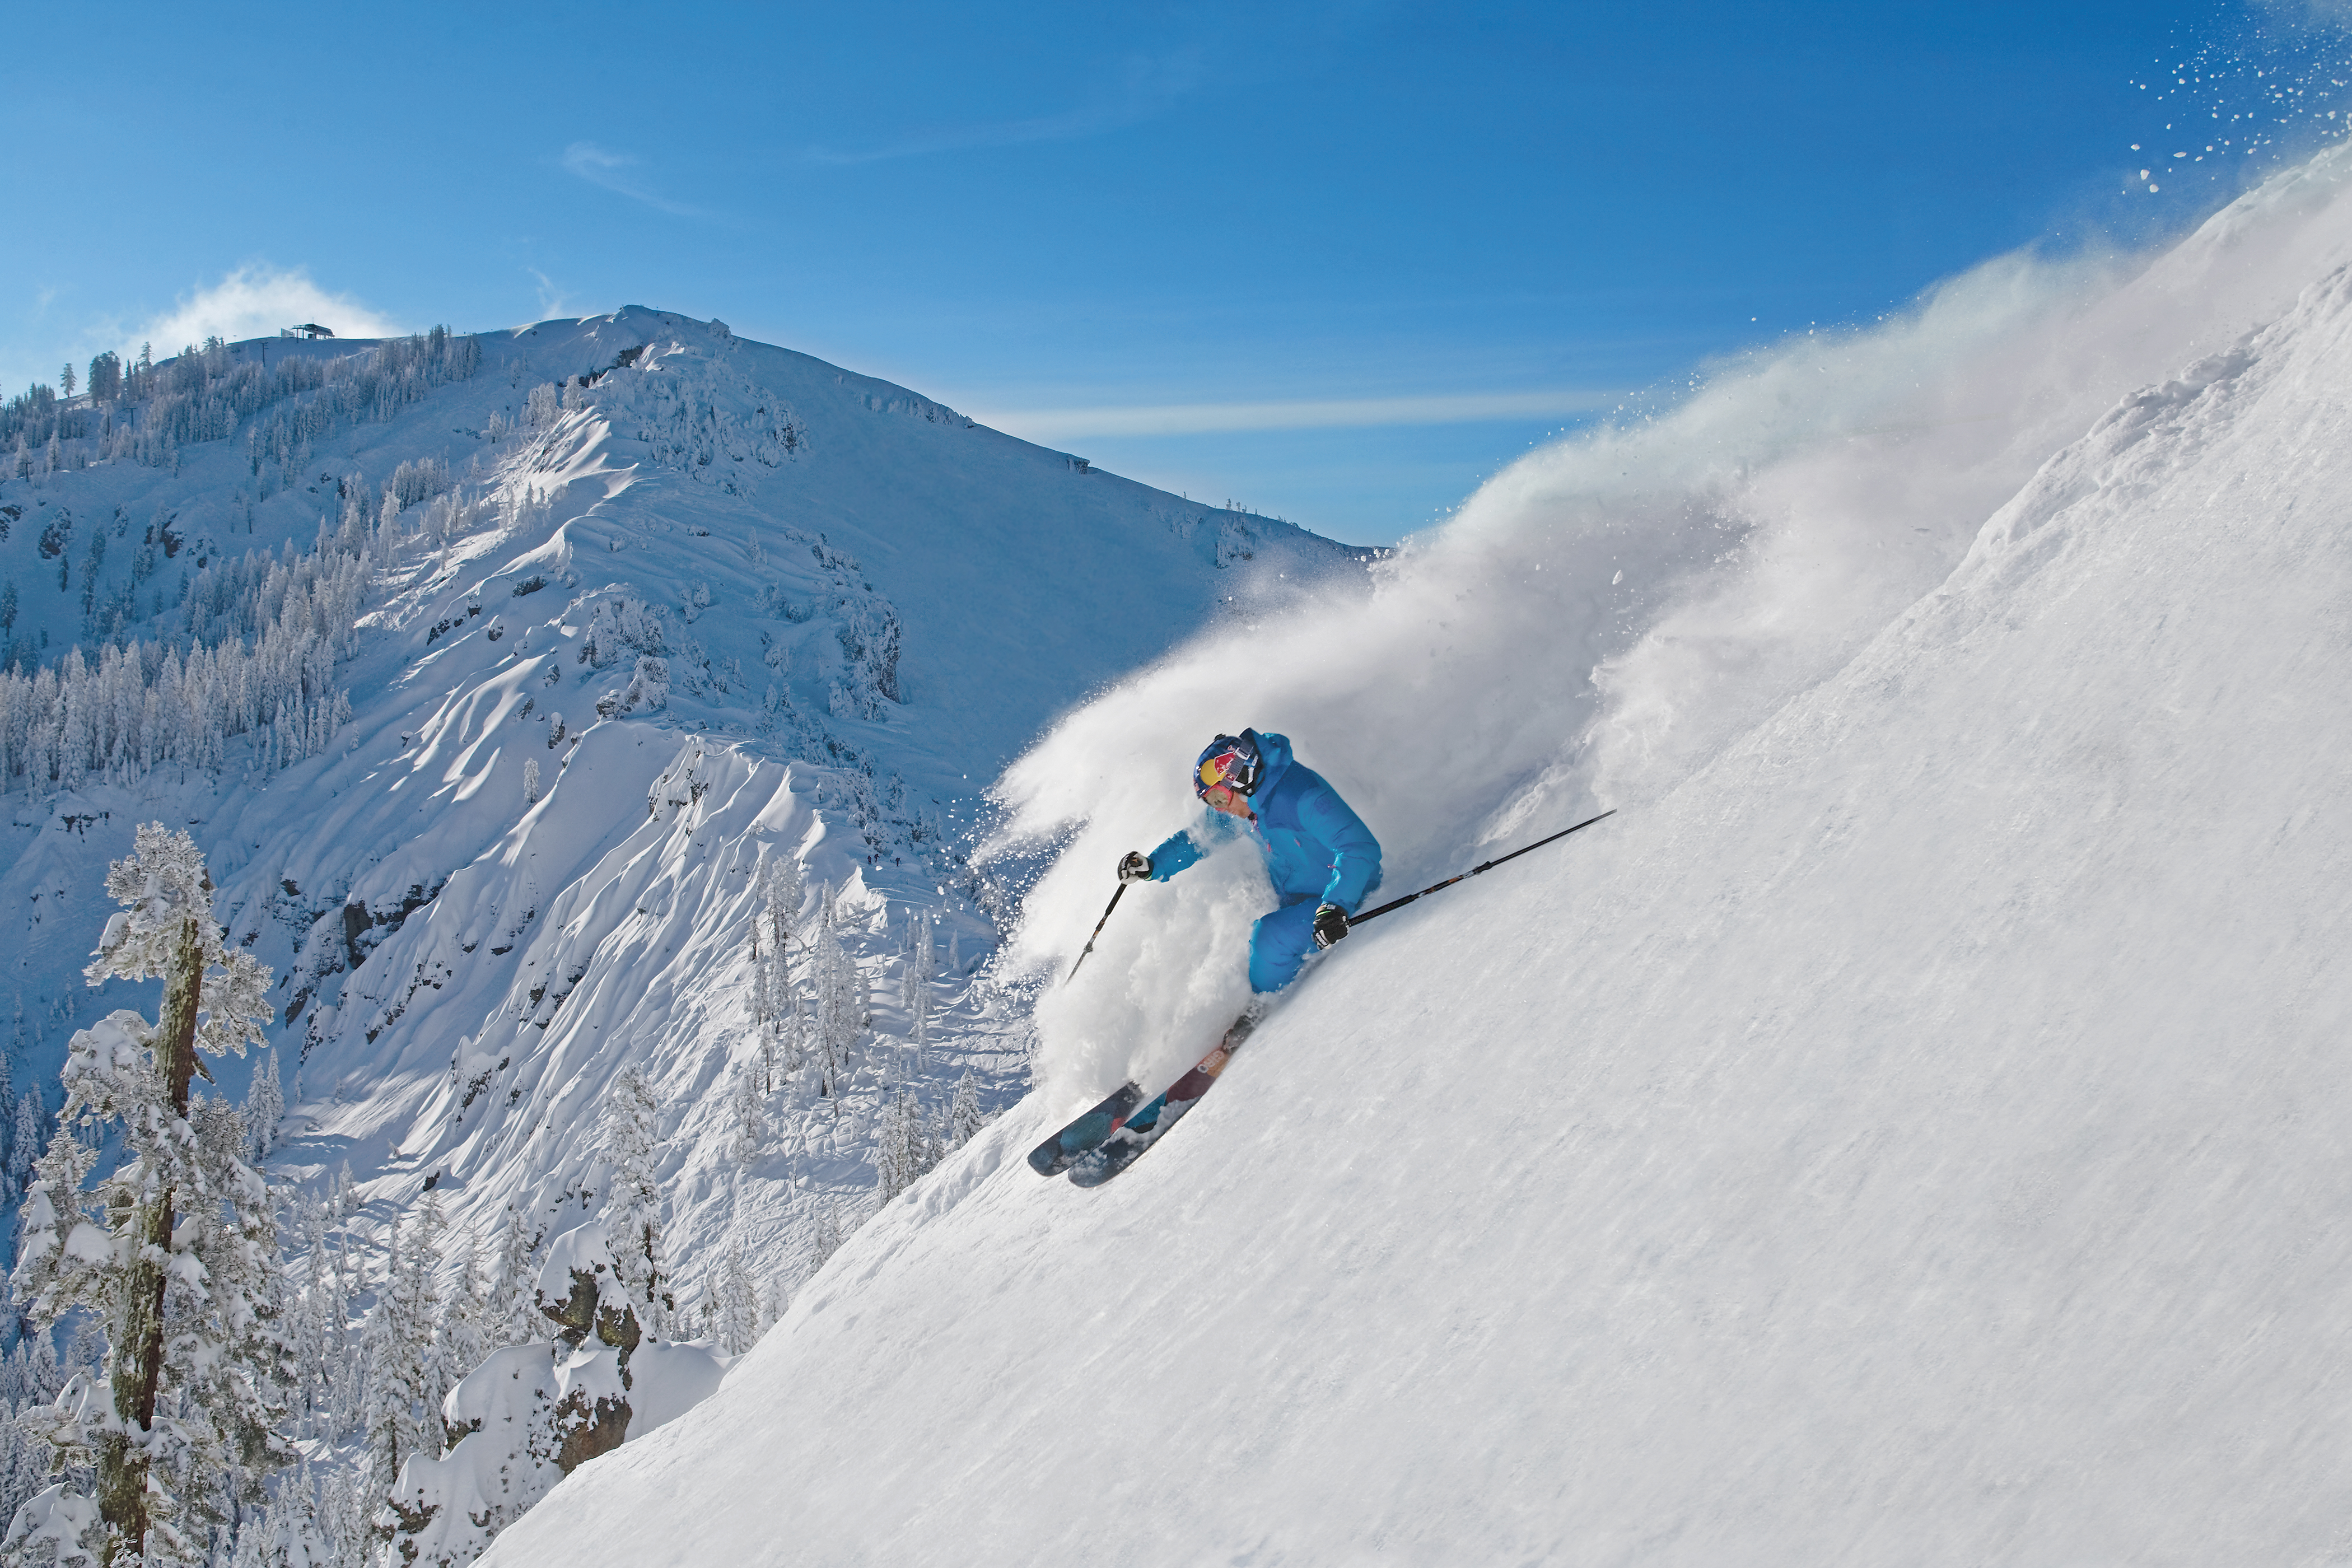 sugar bowl, ca season pass = $249 right now | prices go up november